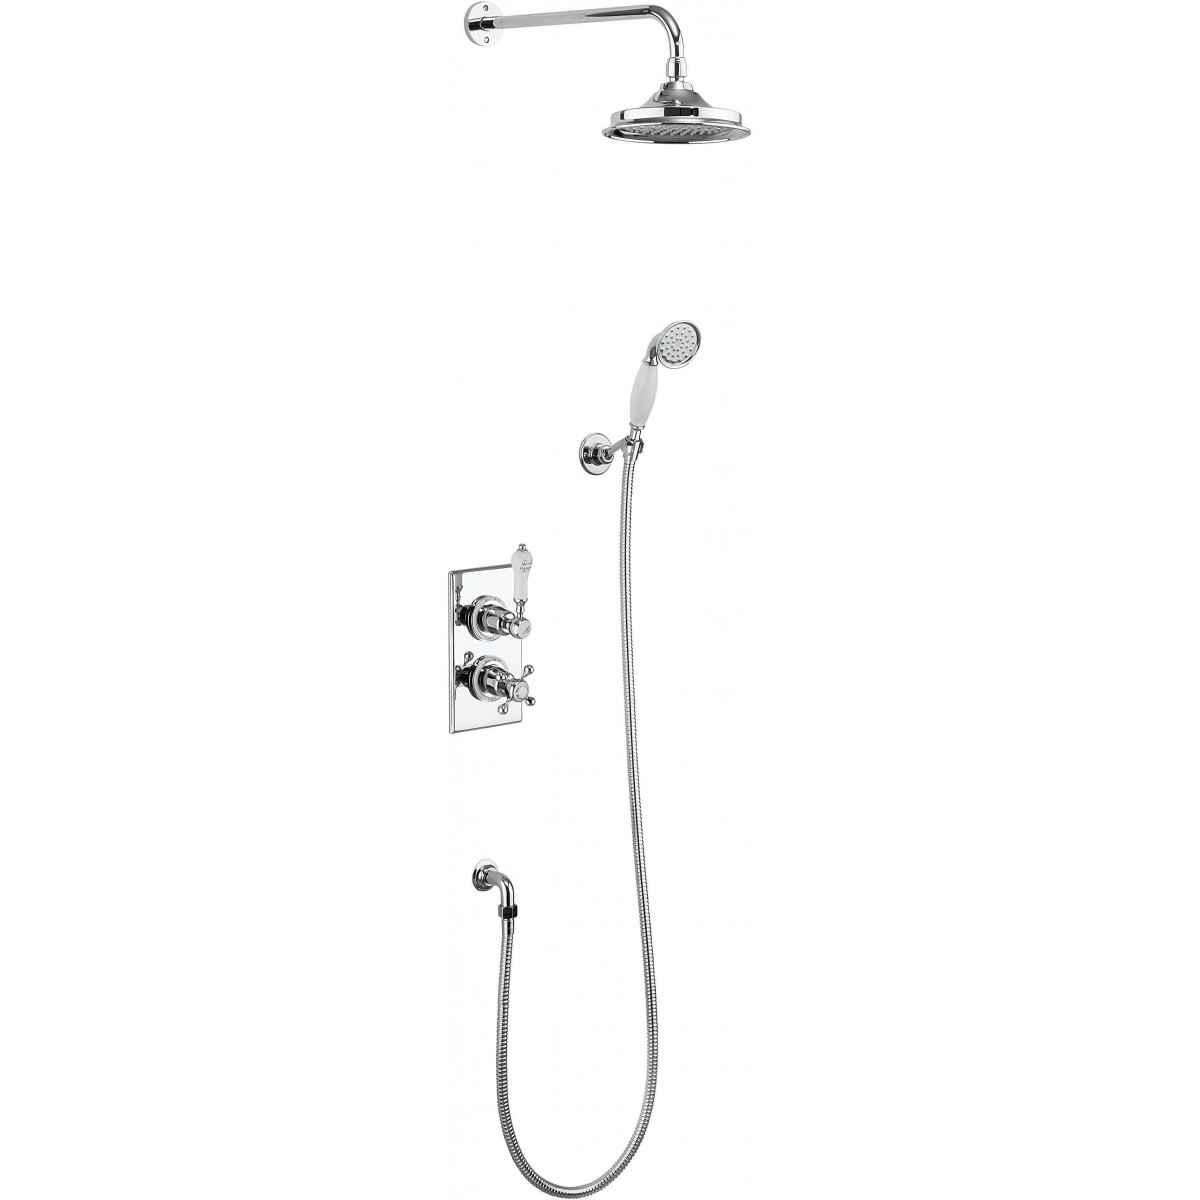 BURLINGTON TRENT CONCEALED THERMOSTATIC SHOWER KIT WITH AIRBURST SHOWER HEAD AND CERAMIC HANDLE HANDSET